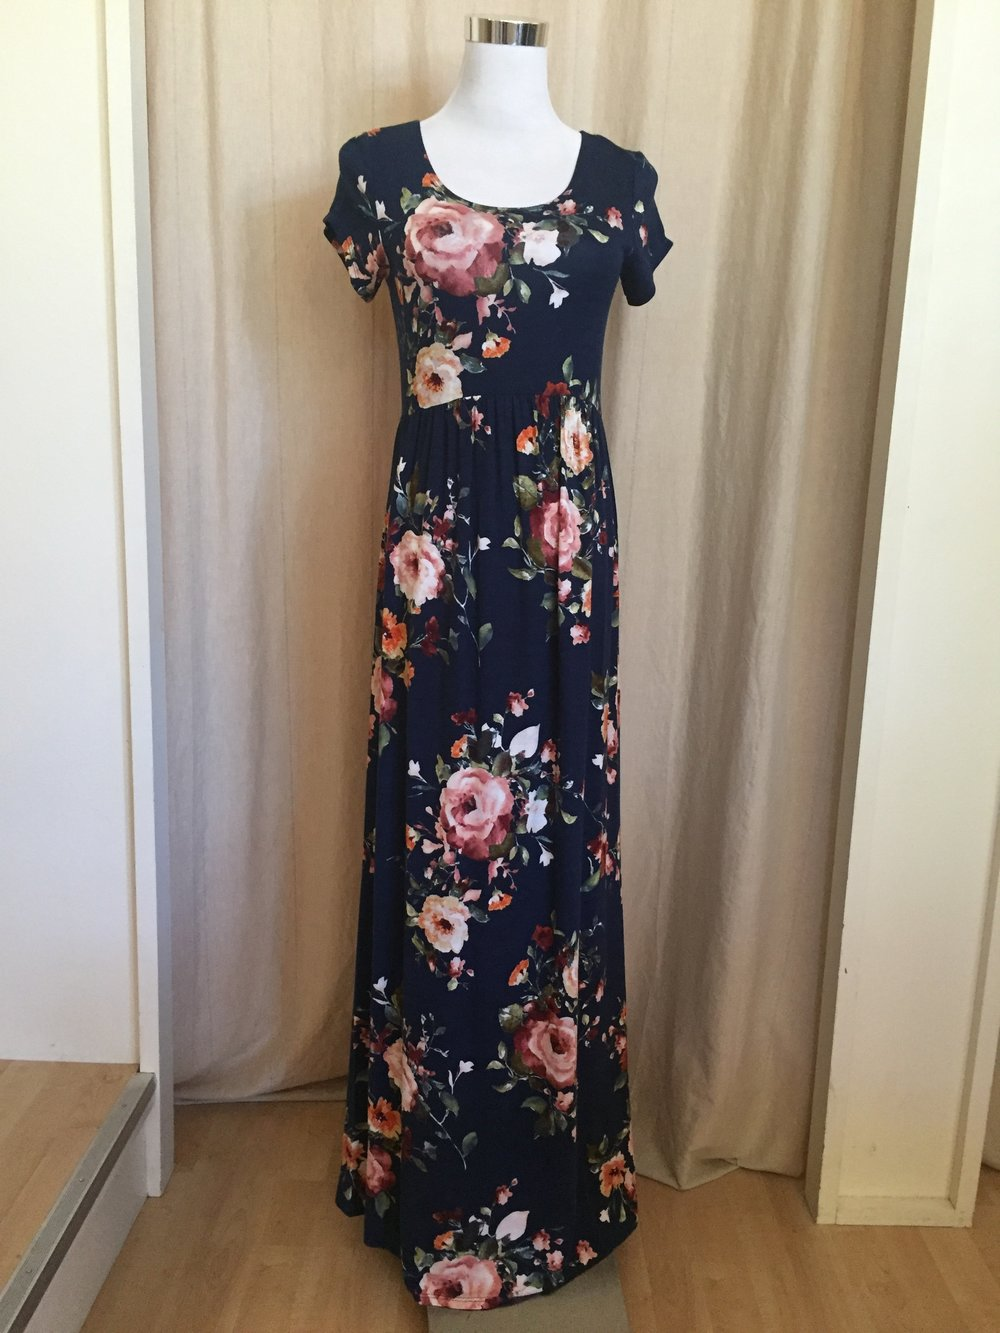 Stunning Floral Maxi, $35